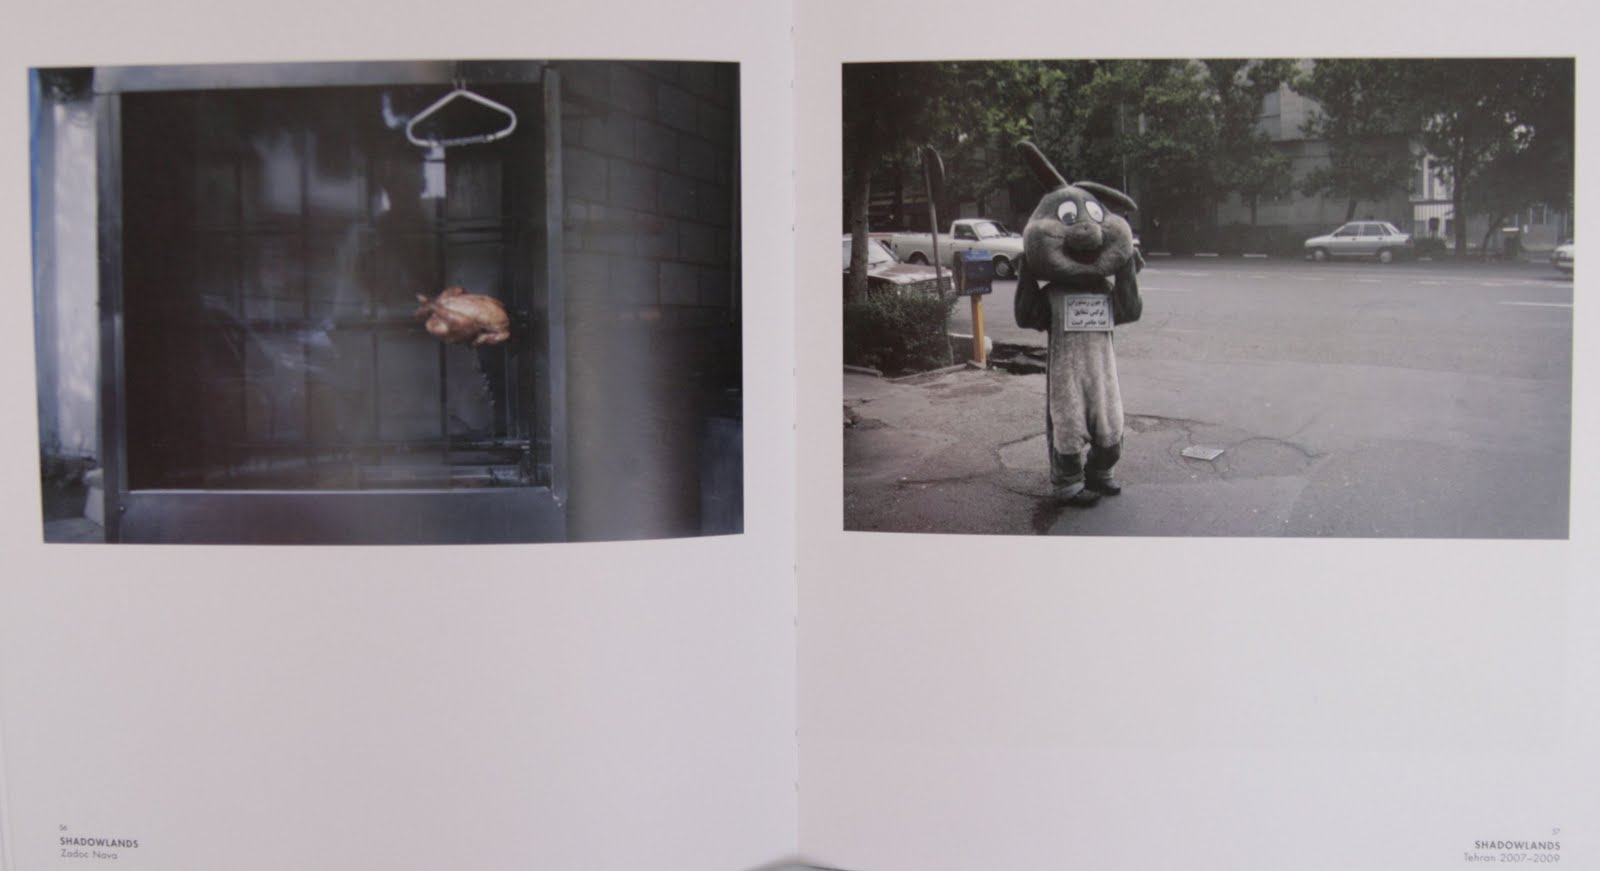 some essays and stuff i write about in uni irina csapo photography zadoc nava tehran from shadowlands photobook 2010